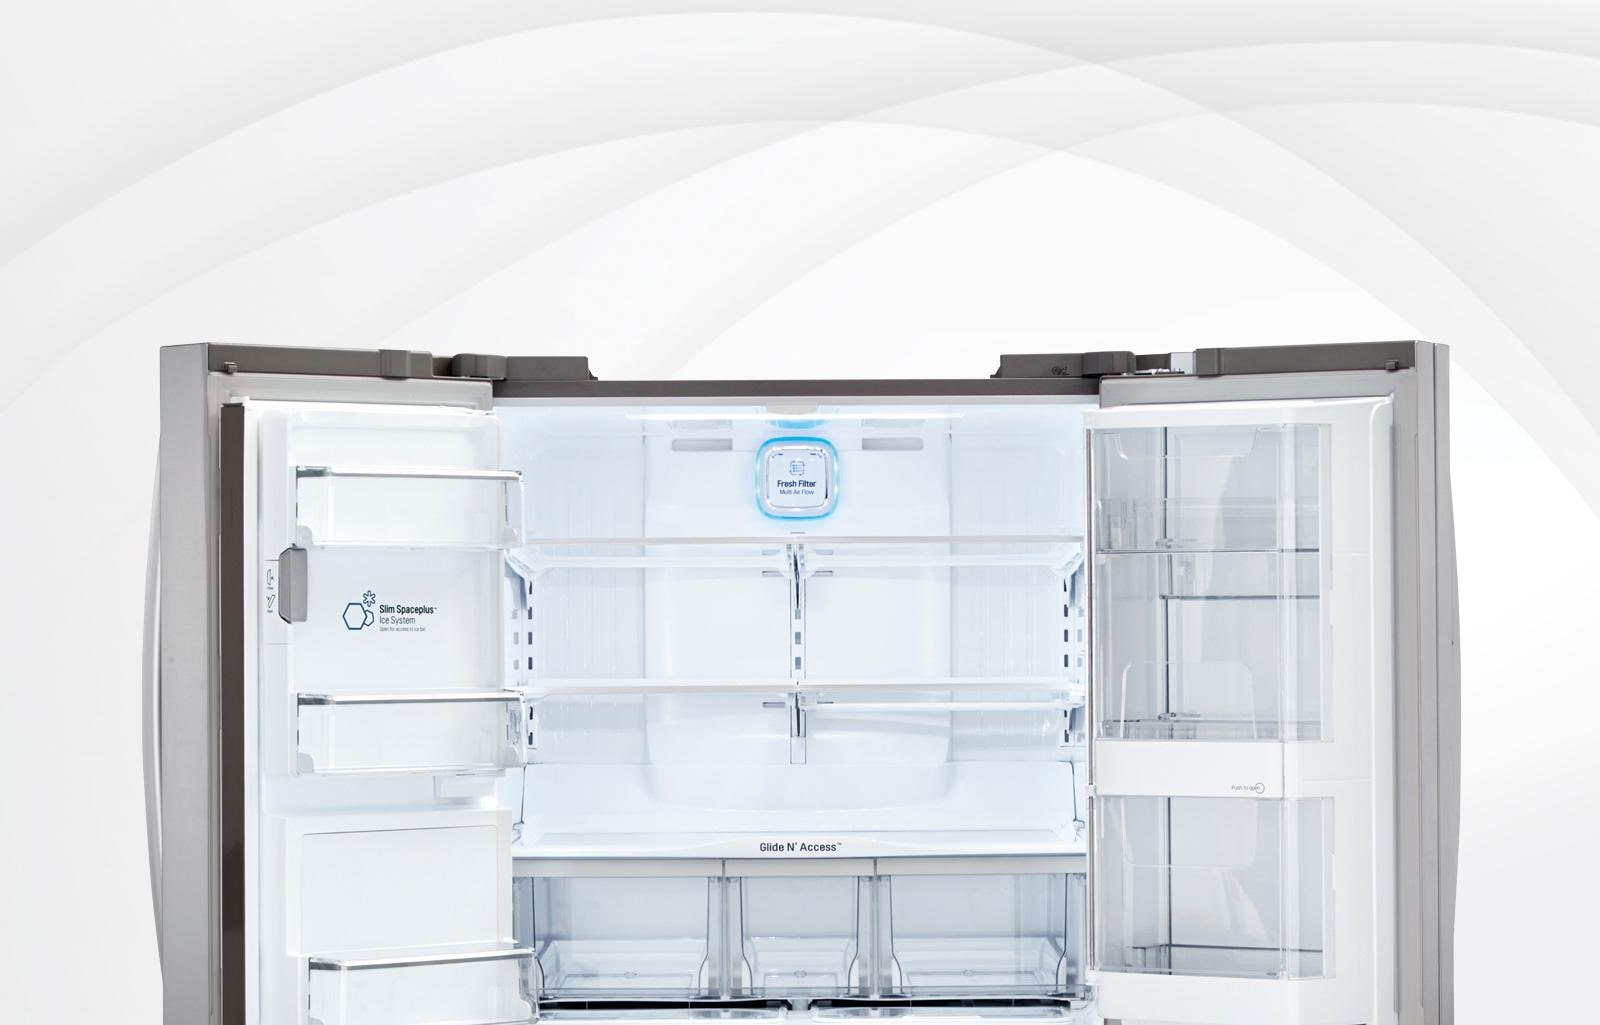 lg refrigerator air filter replacement. as sophisticated it looks lg refrigerator air filter replacement